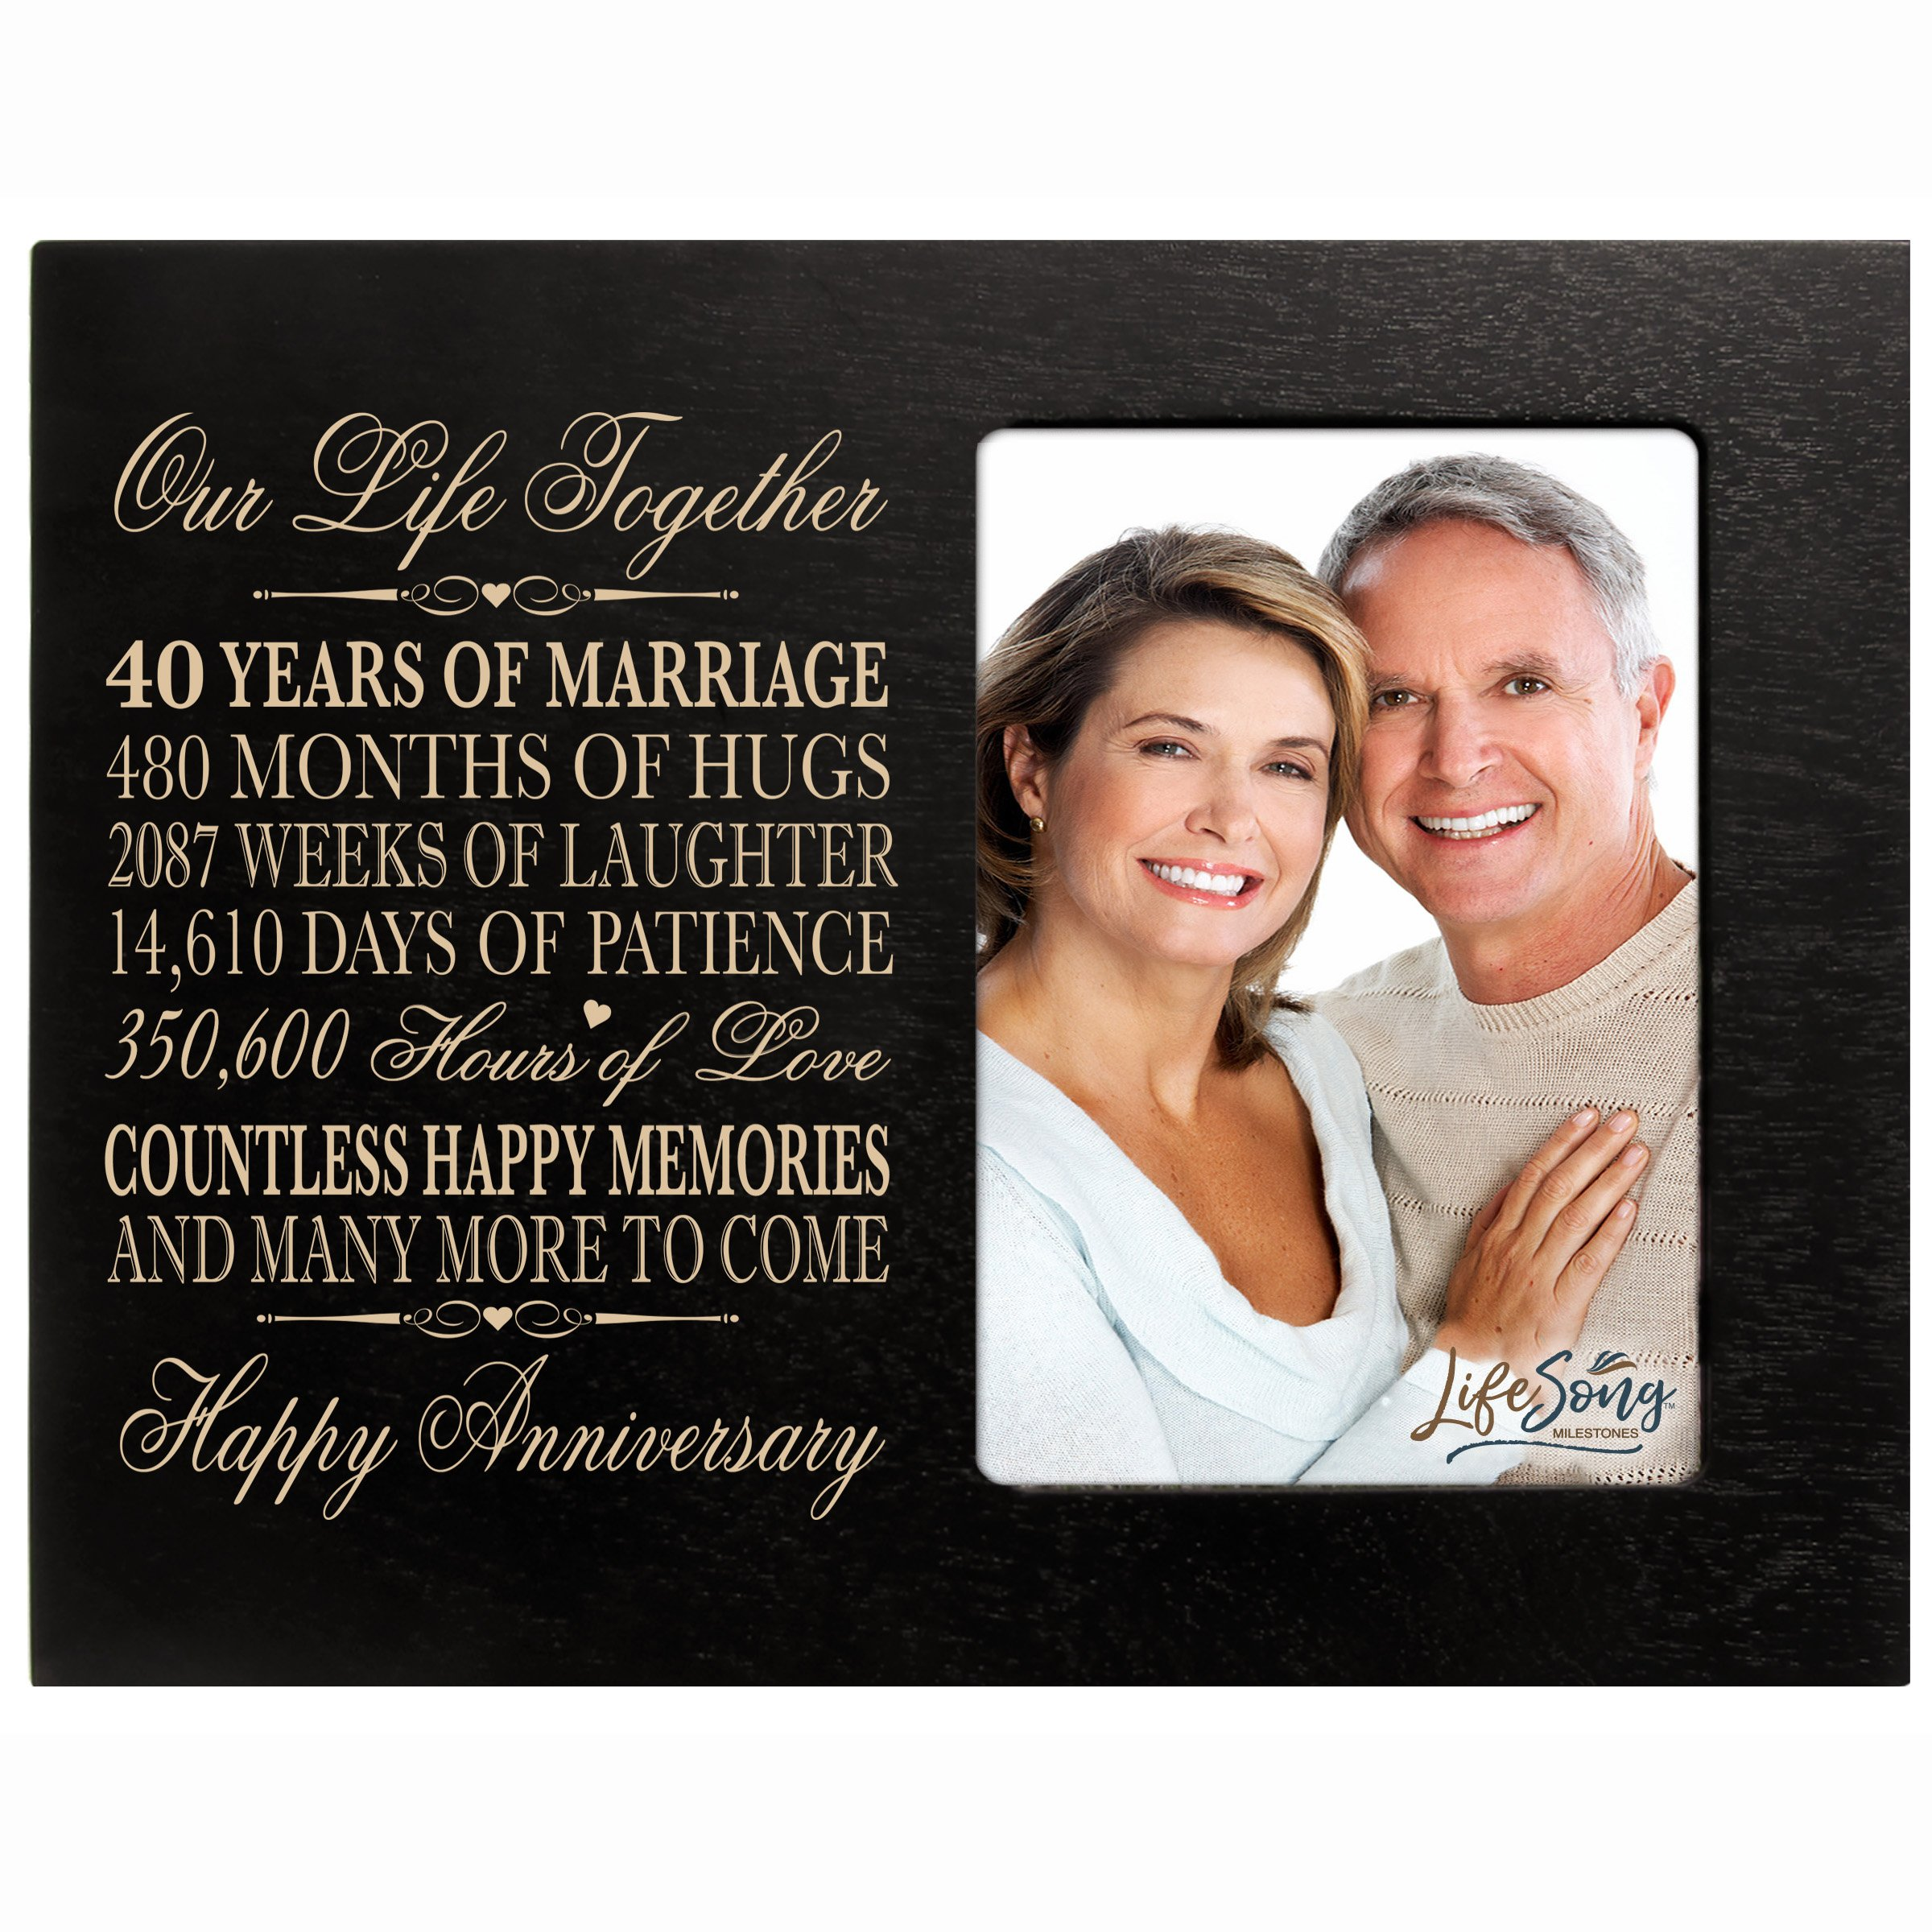 LifeSong Milestones Forty Year Wedding Anniversary Frame Gift for Couple him her Custom Engraved 40th Year Wedding Celebration Photo Frame Holds 1 4x6 Photo 8'' H X 10'' W (Black) by LifeSong